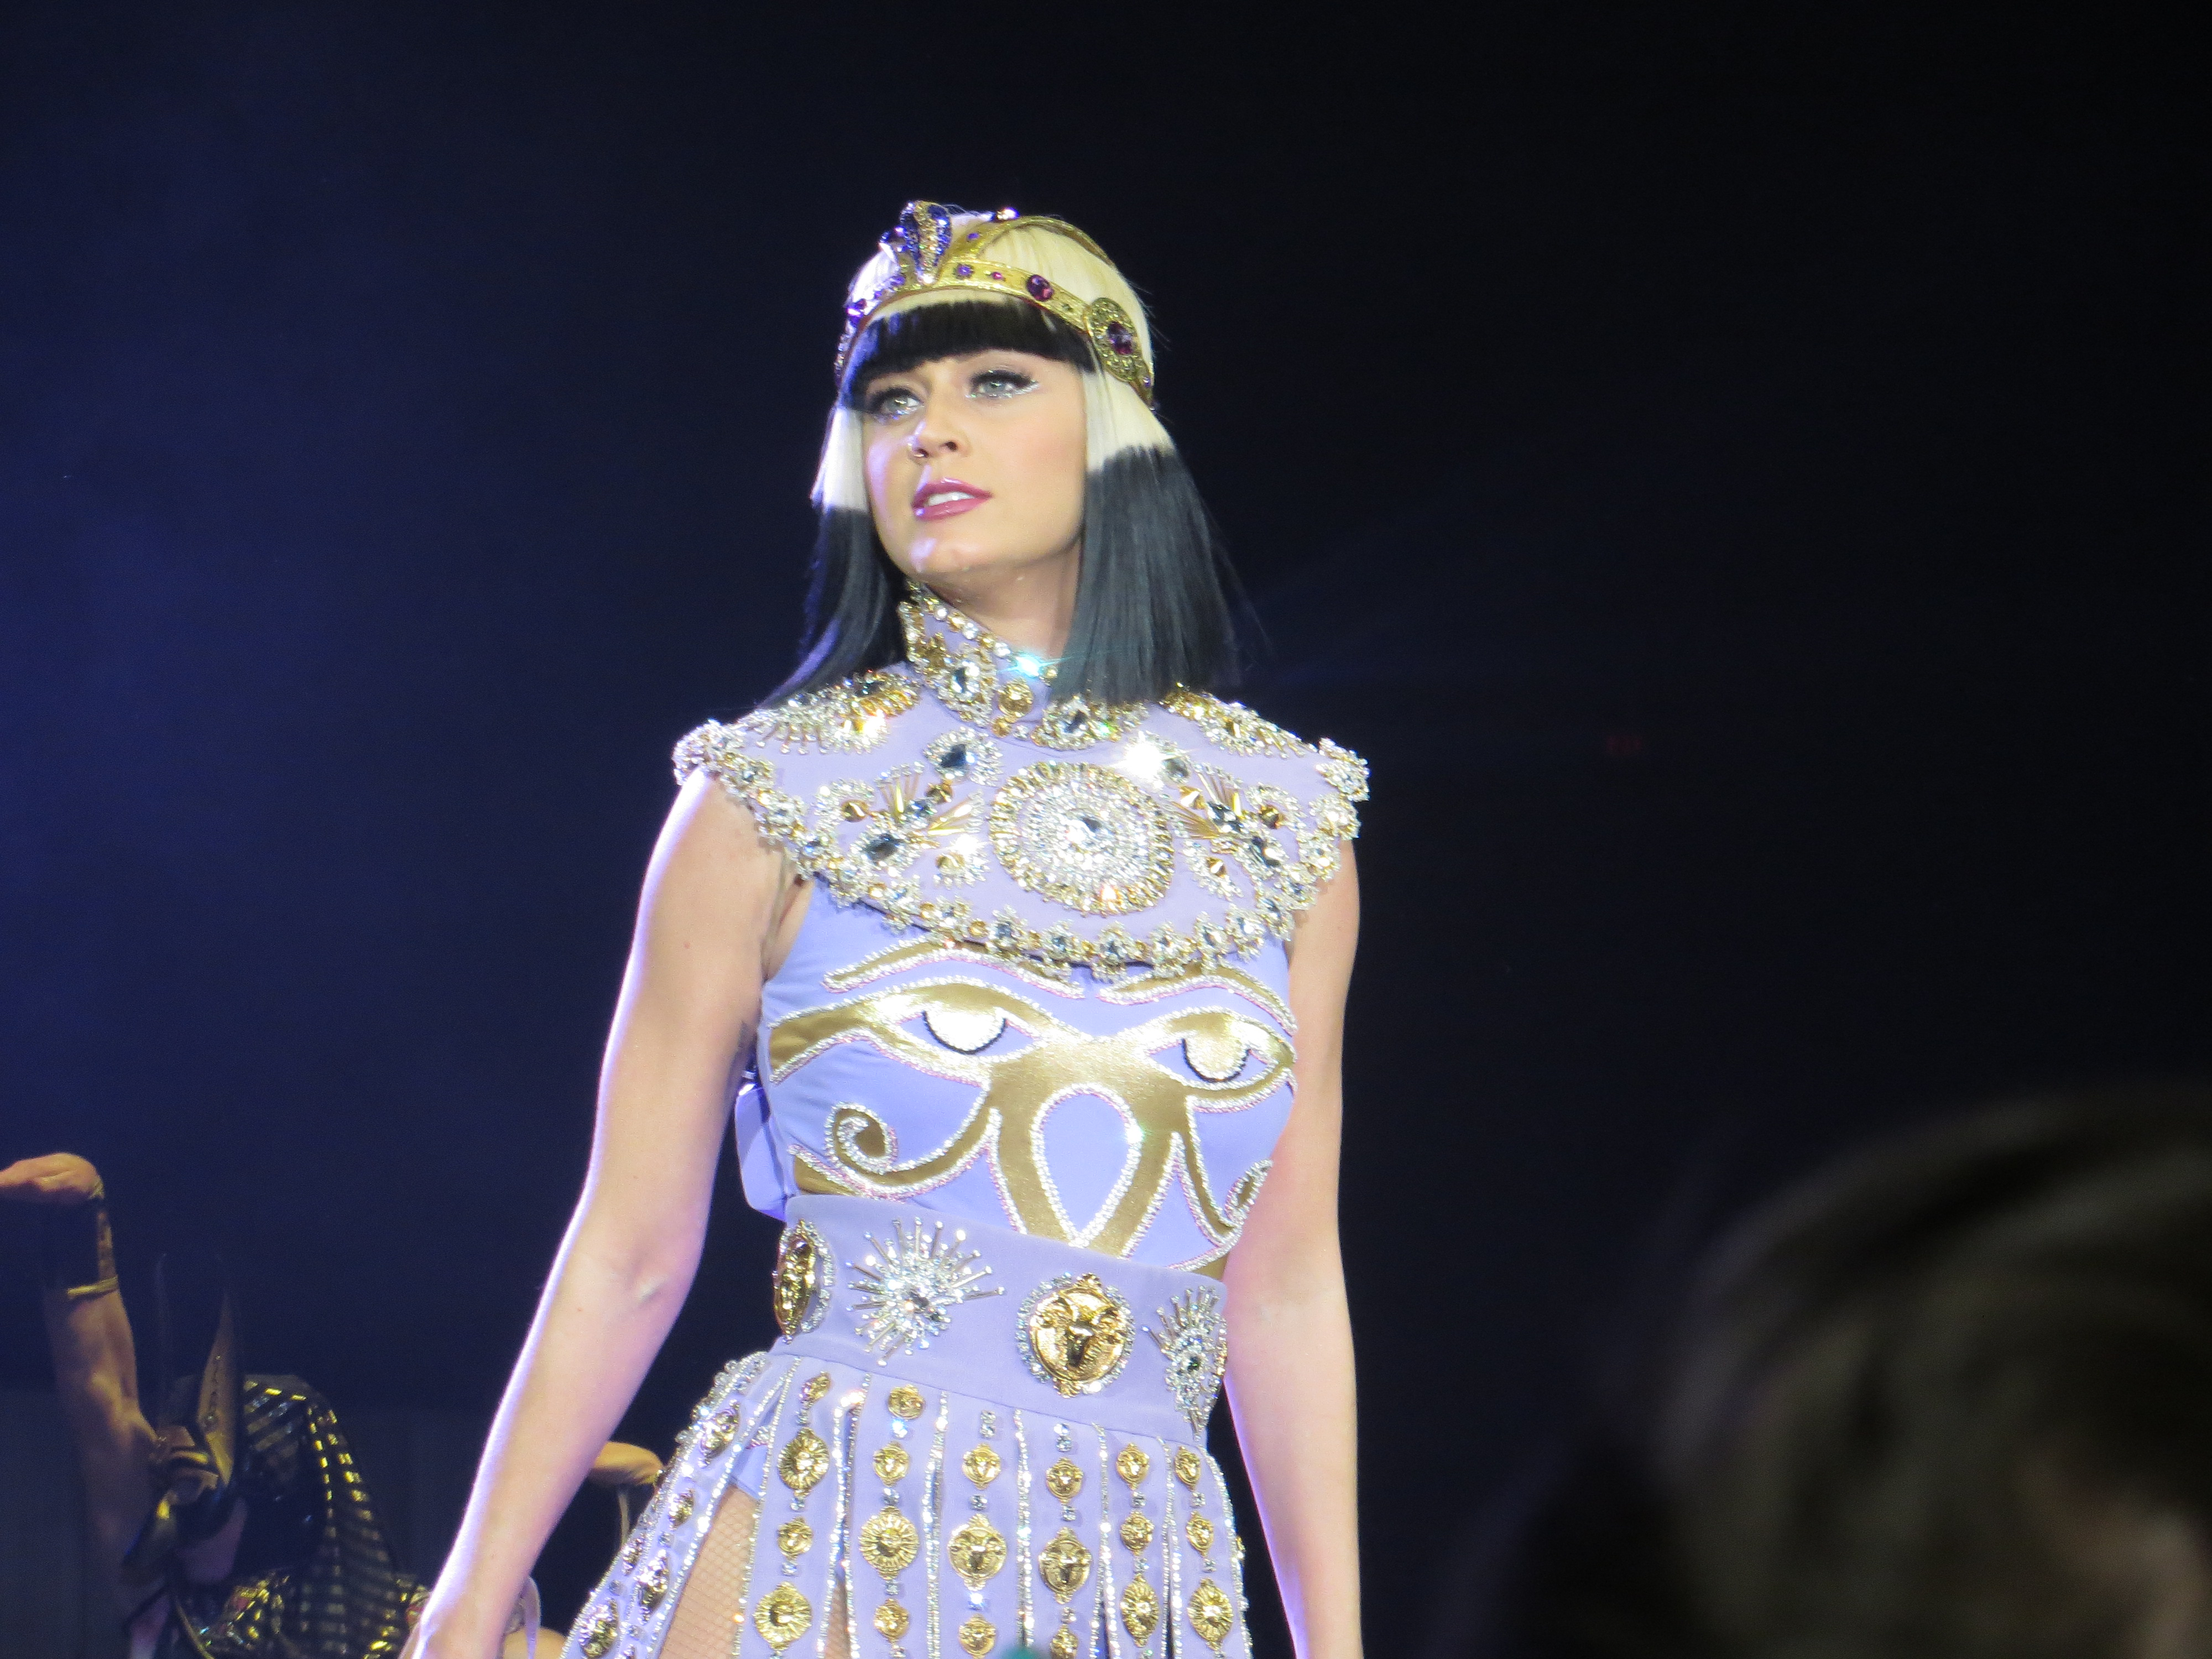 Katy Perry To Play 2015 Superbowl Halftime Show